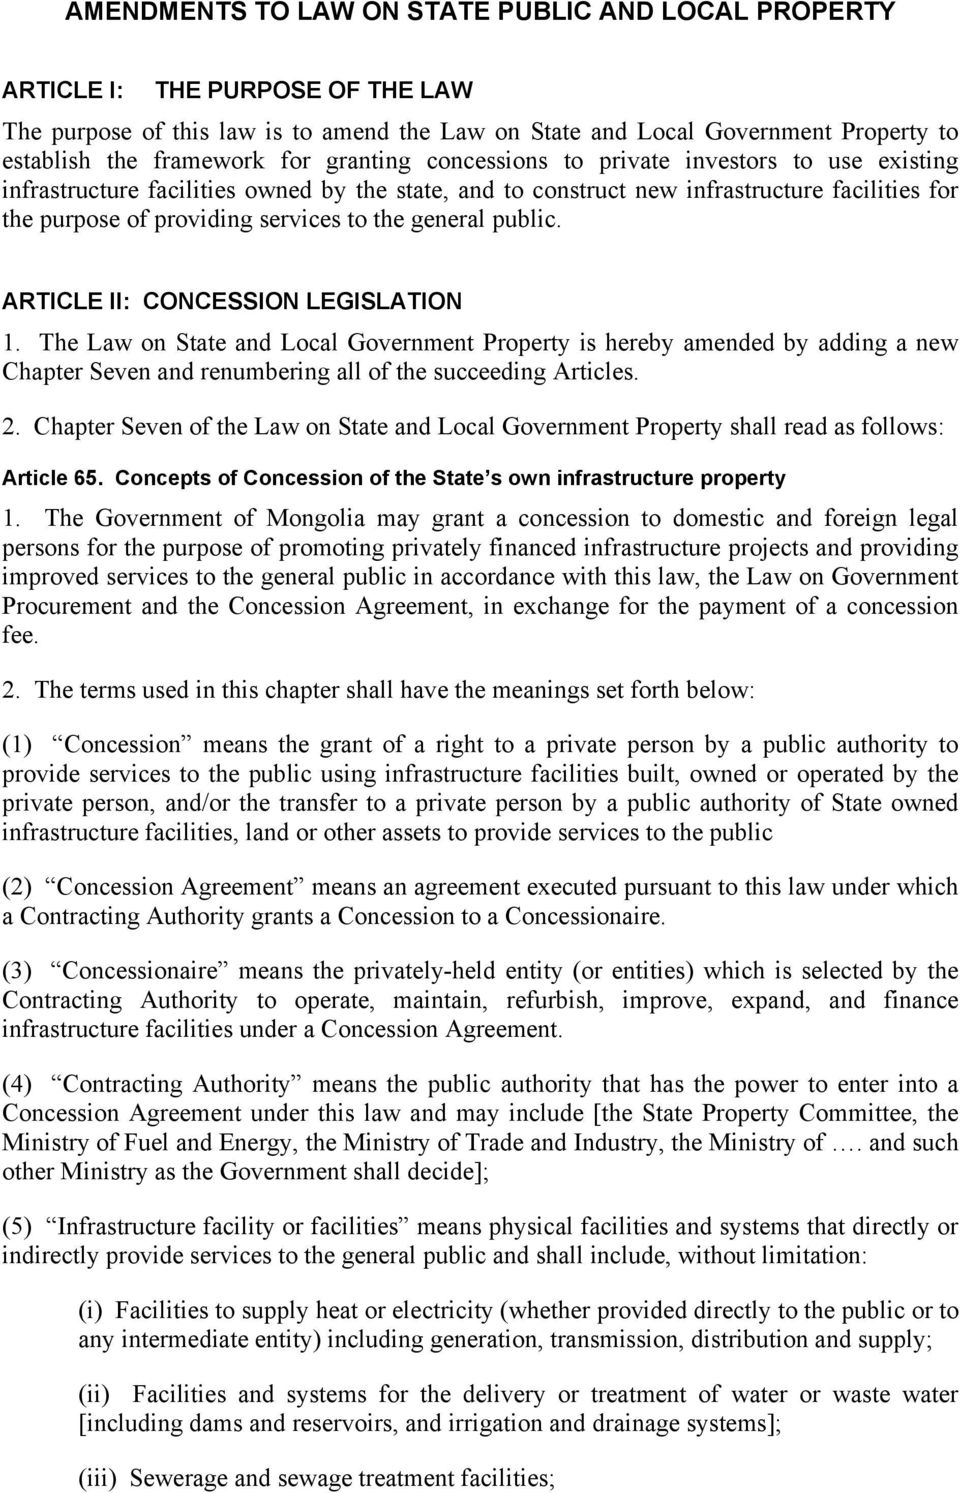 general public. ARTICLE II: CONCESSION LEGISLATION 1. The Law on State and Local Government Property is hereby amended by adding a new Chapter Seven and renumbering all of the succeeding Articles. 2.